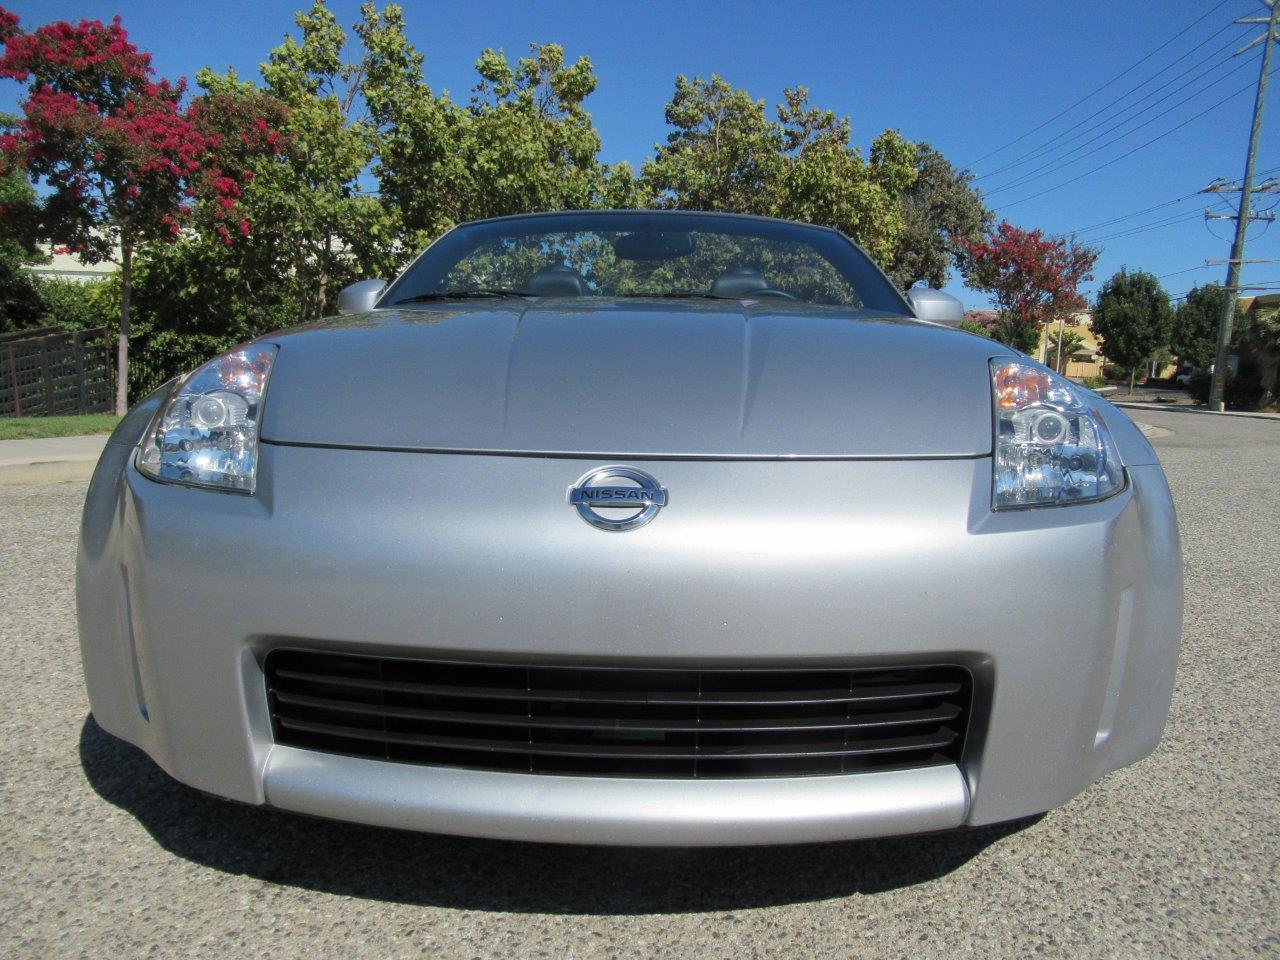 2005 Nissan 350Z (CC-1256600) for sale in SIMI VALLEY, California